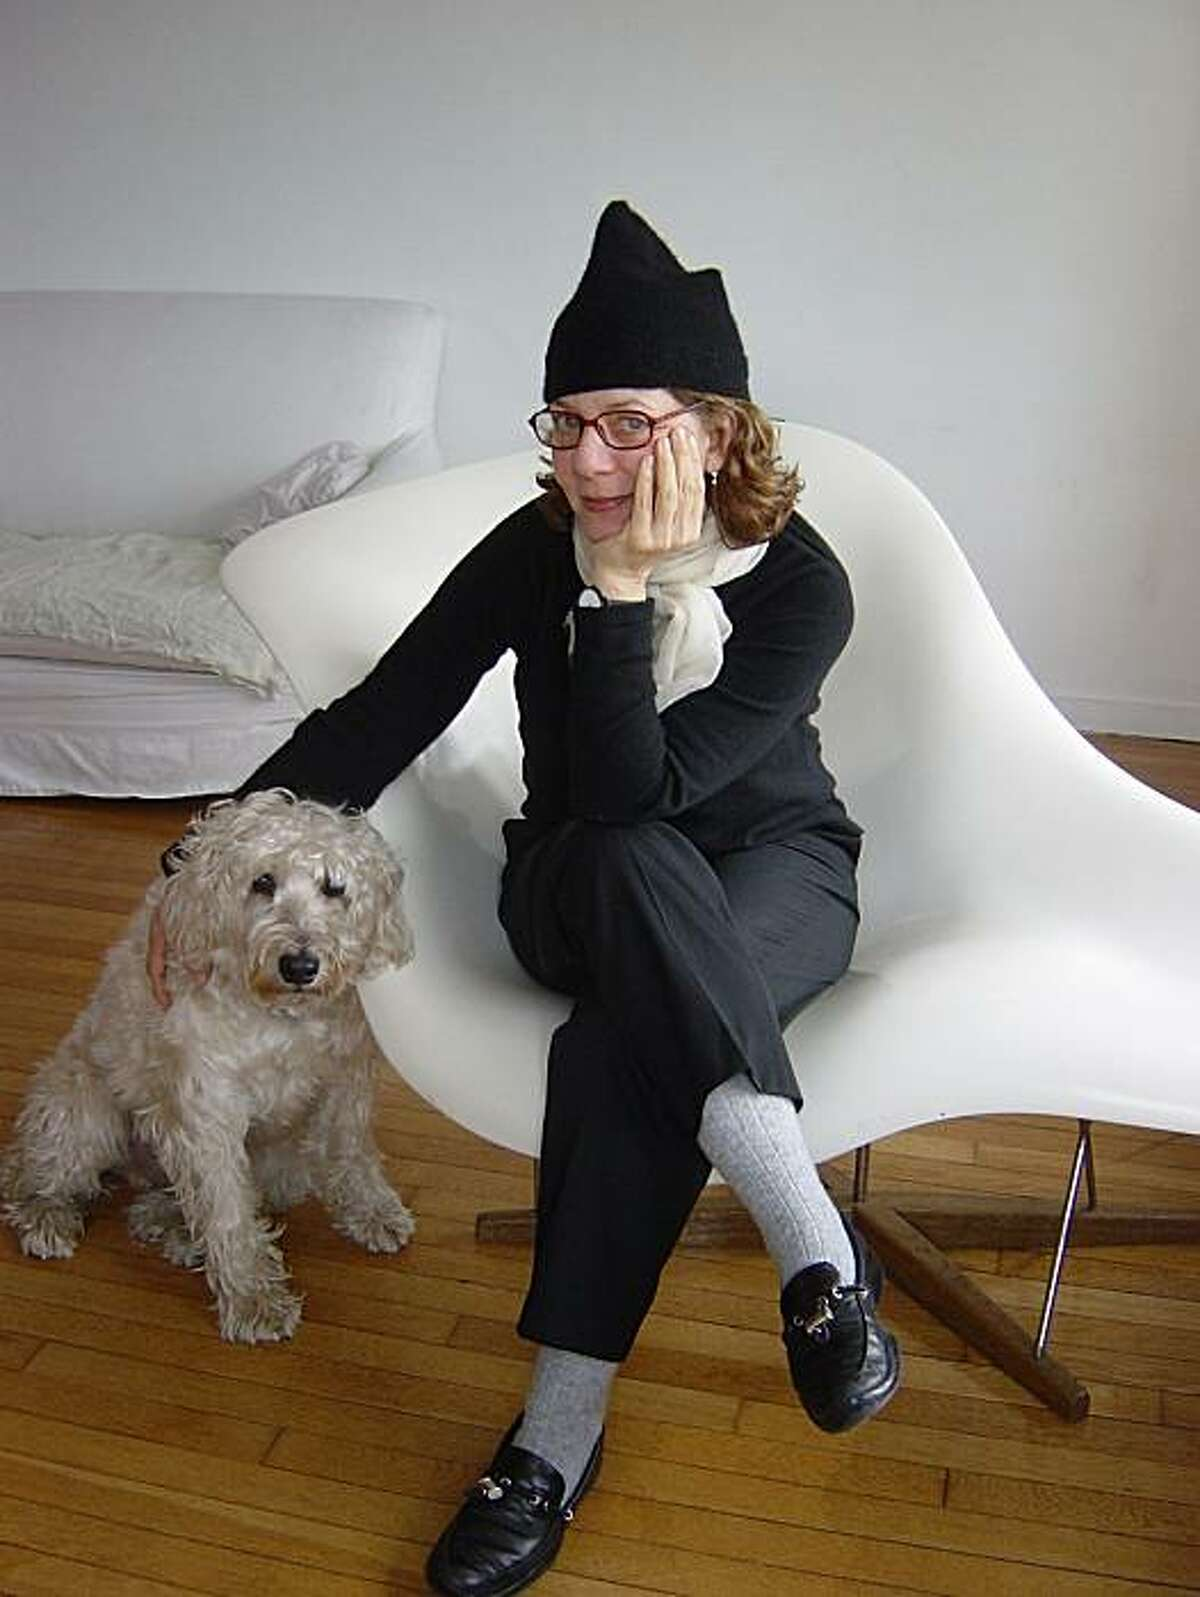 Portrait of New York artist, author and illustrator Maira Kalman with her dog